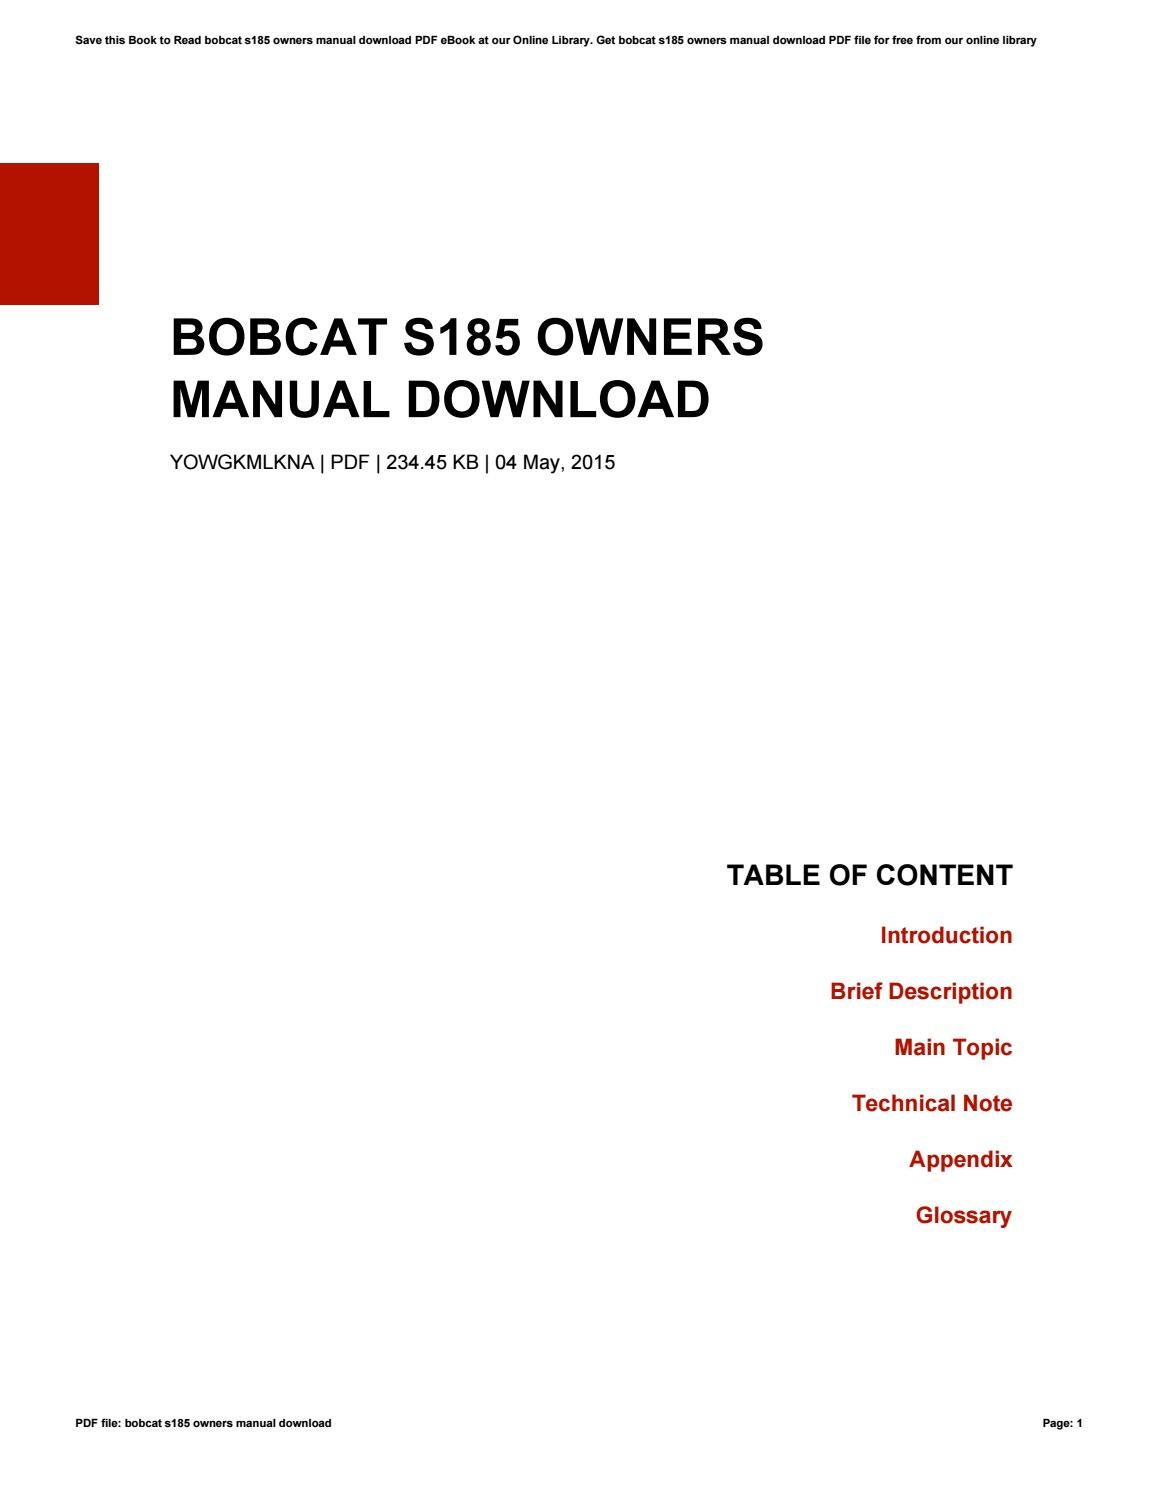 Bobcat s185 owners manual download by PearlineMatlock3107